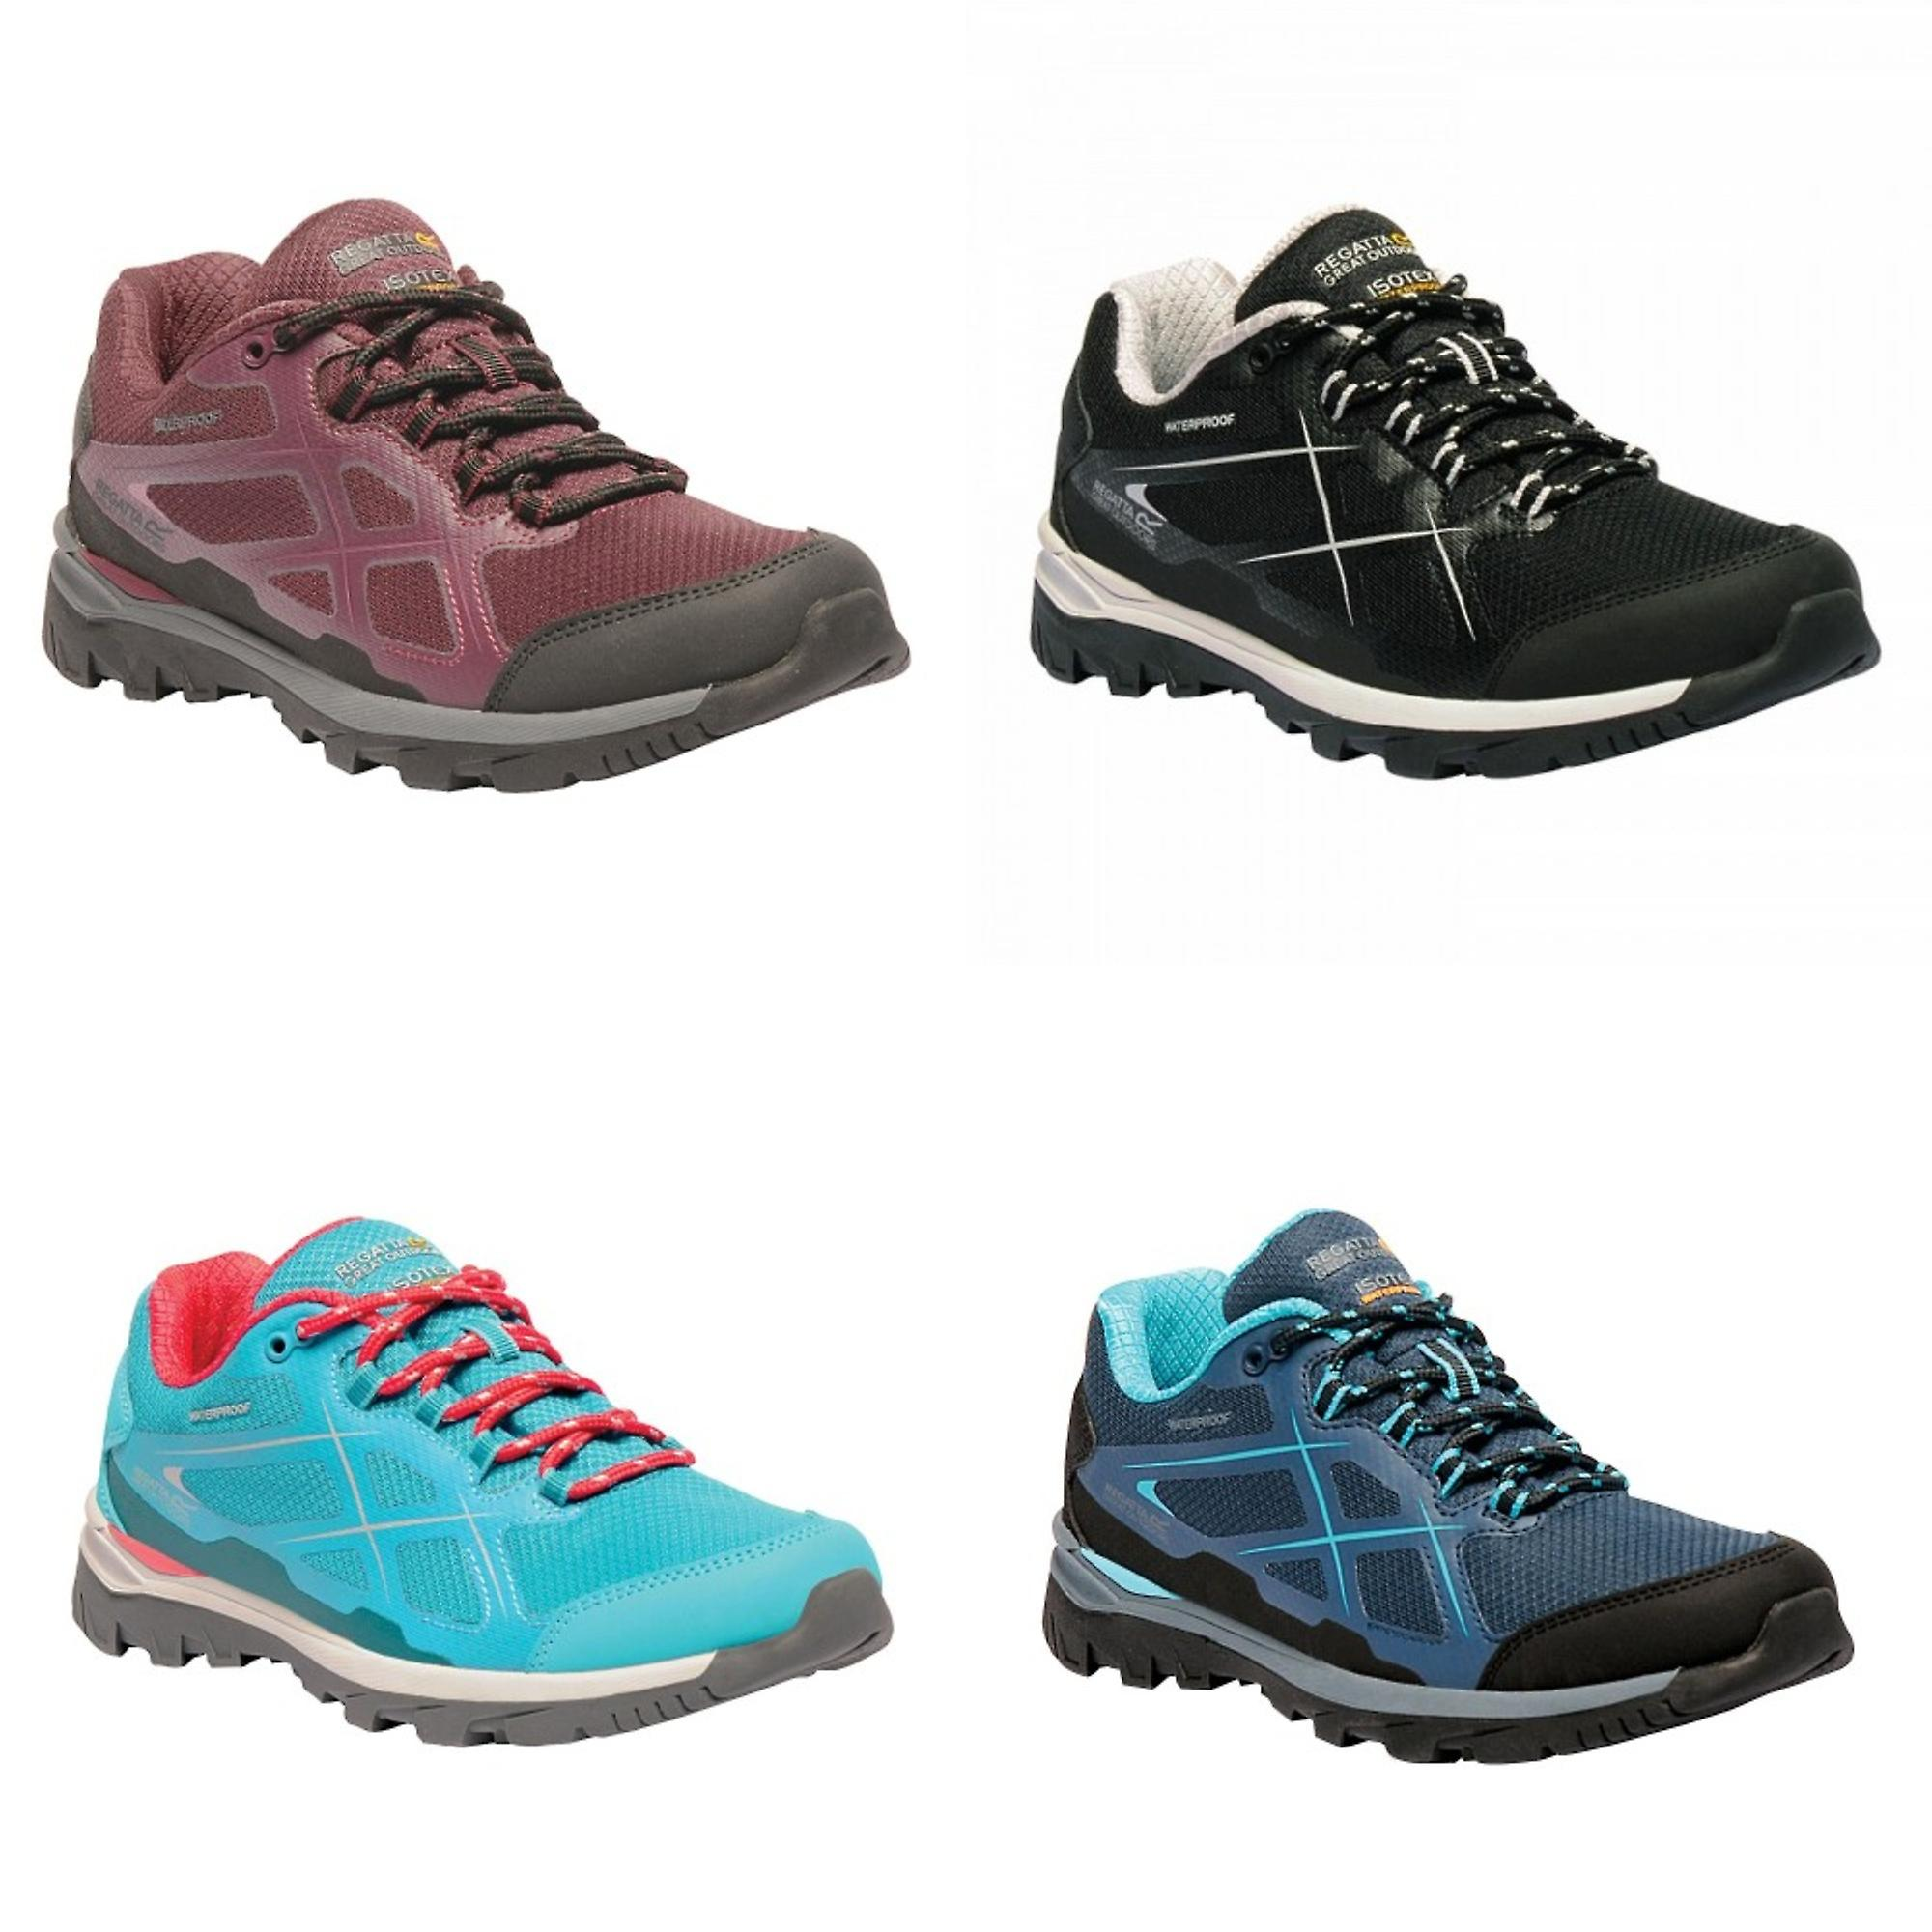 Regatta Great Outdoors Womens/Ladies Kota Low Walking Shoes sv89s